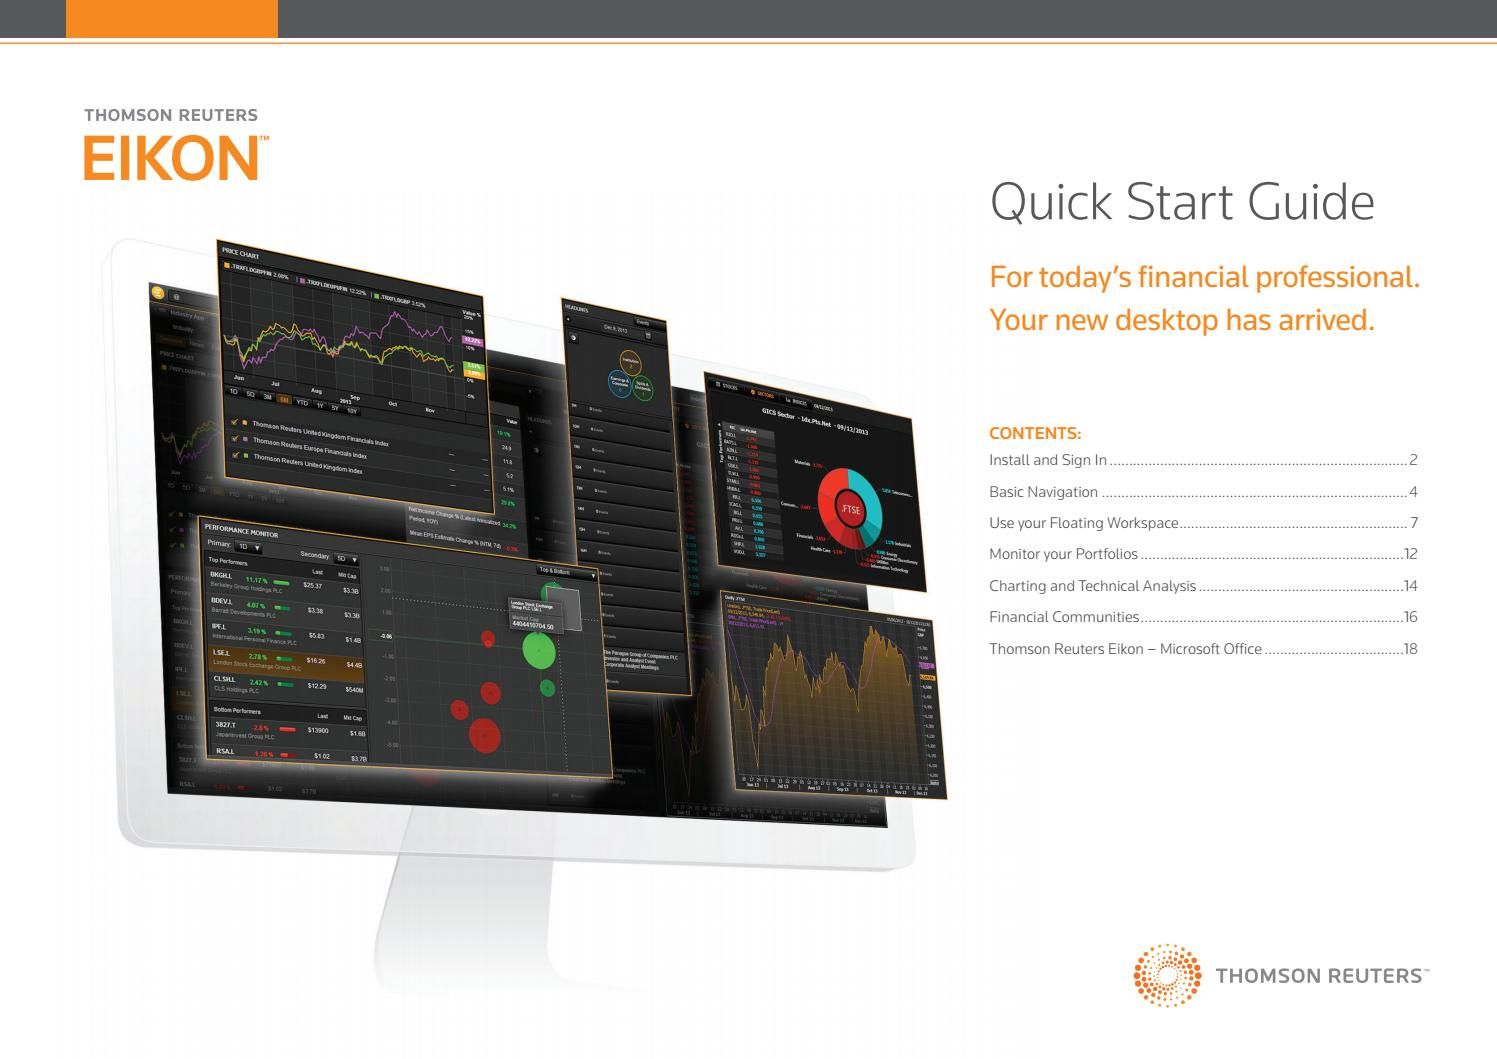 Thomson Reuters EIKON: Quick Start Guide by INCEIF Knowledge